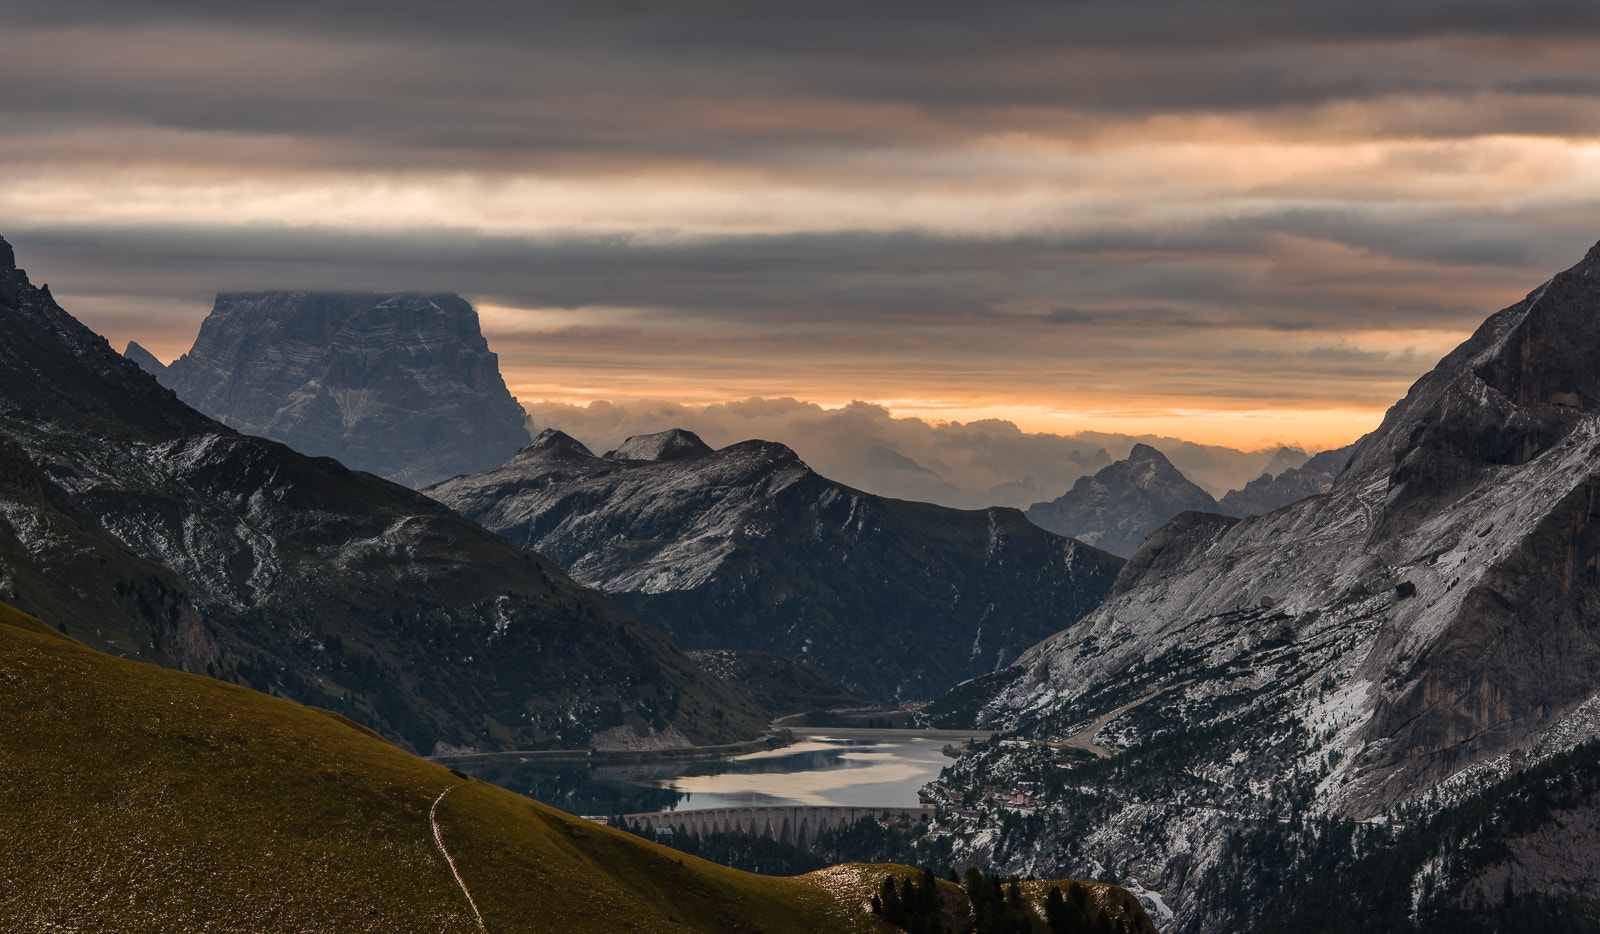 Photograph Morning light at Passo Fedaia by Hans Kruse on 500px